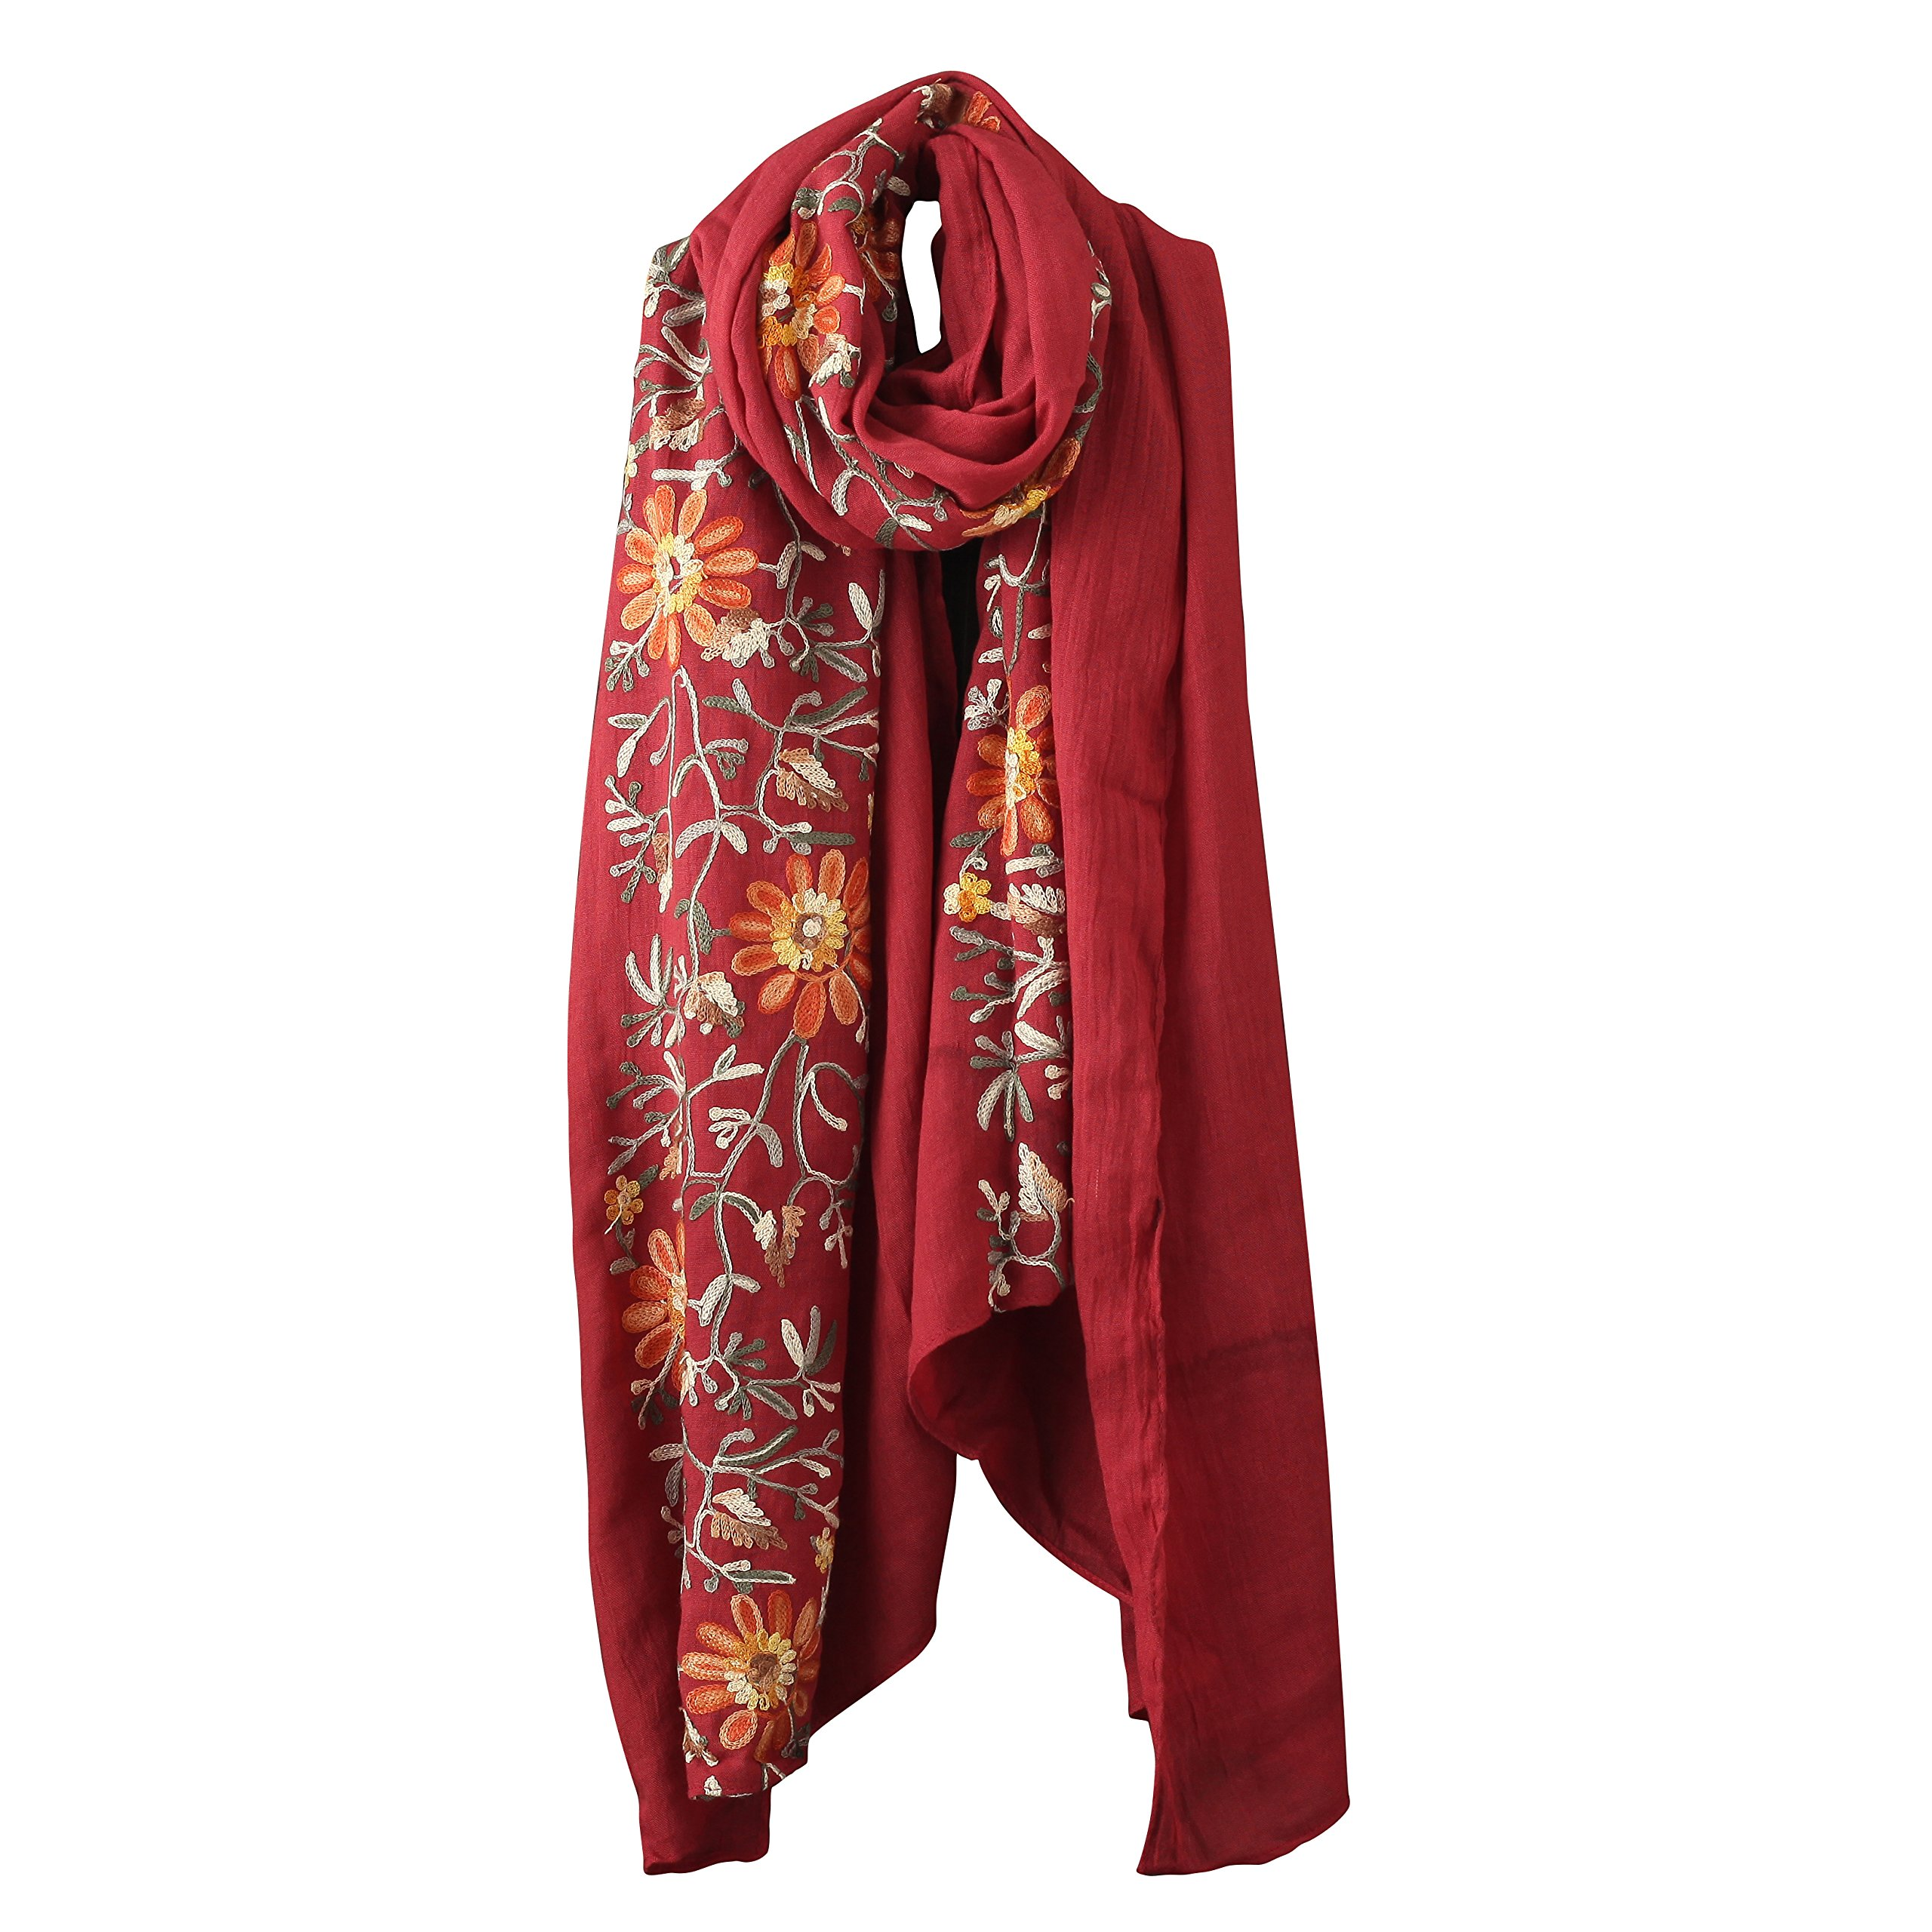 Welltogther Womens National Style Lightweight Neck Scarves Flower Wrap Shawl (Wine Red)